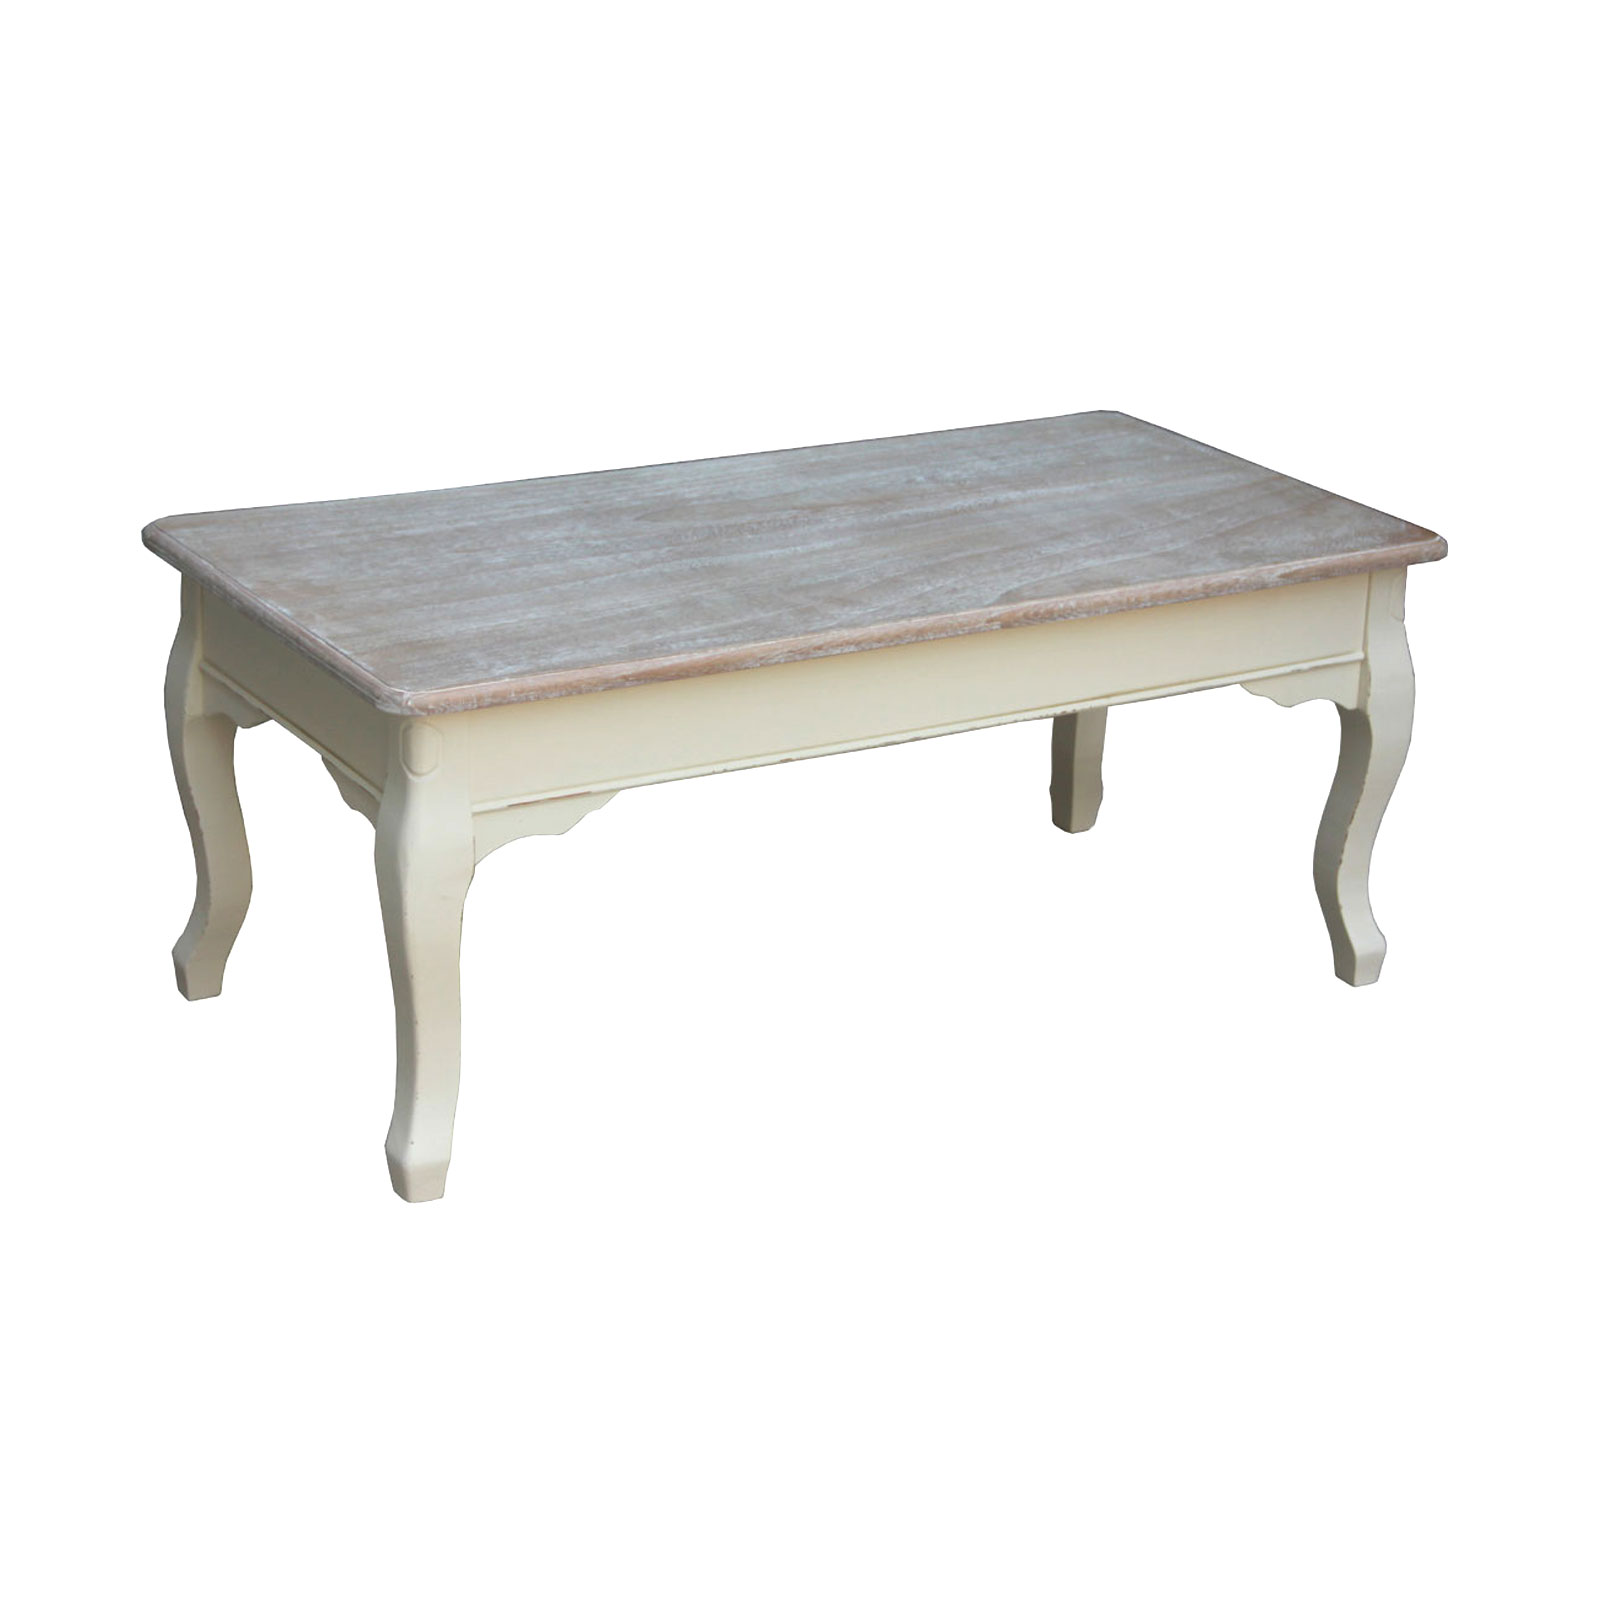 Antique Cream Coffee Table Charles Bentley Cream Maison Vintage Coffee Table Wooden